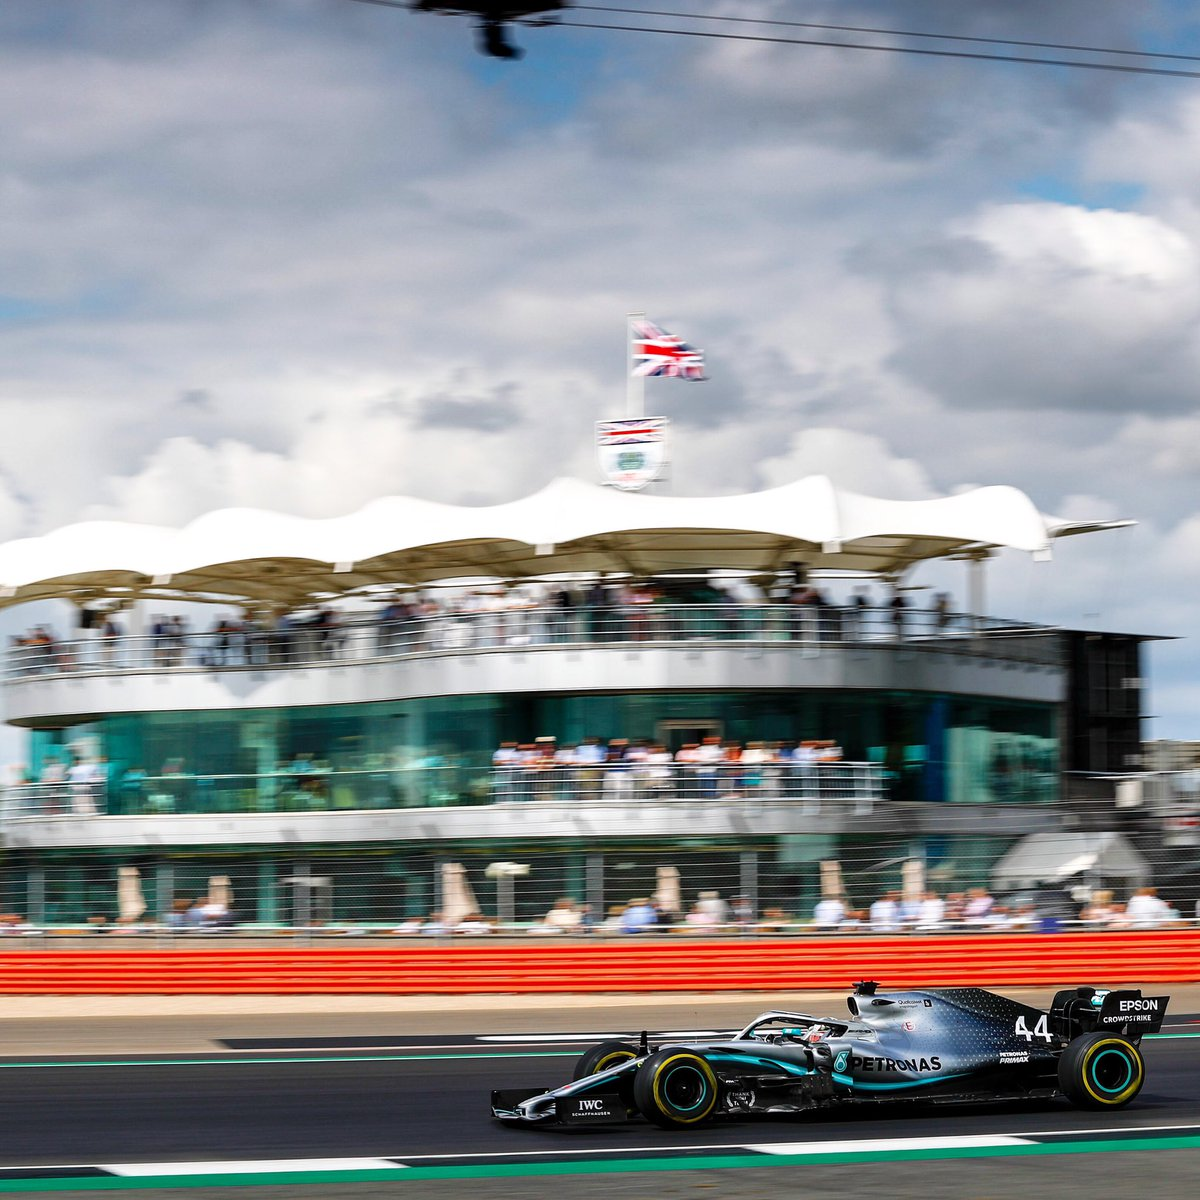 Take us back! ❤️ 🙌 if you're already missing @SilverstoneUK!